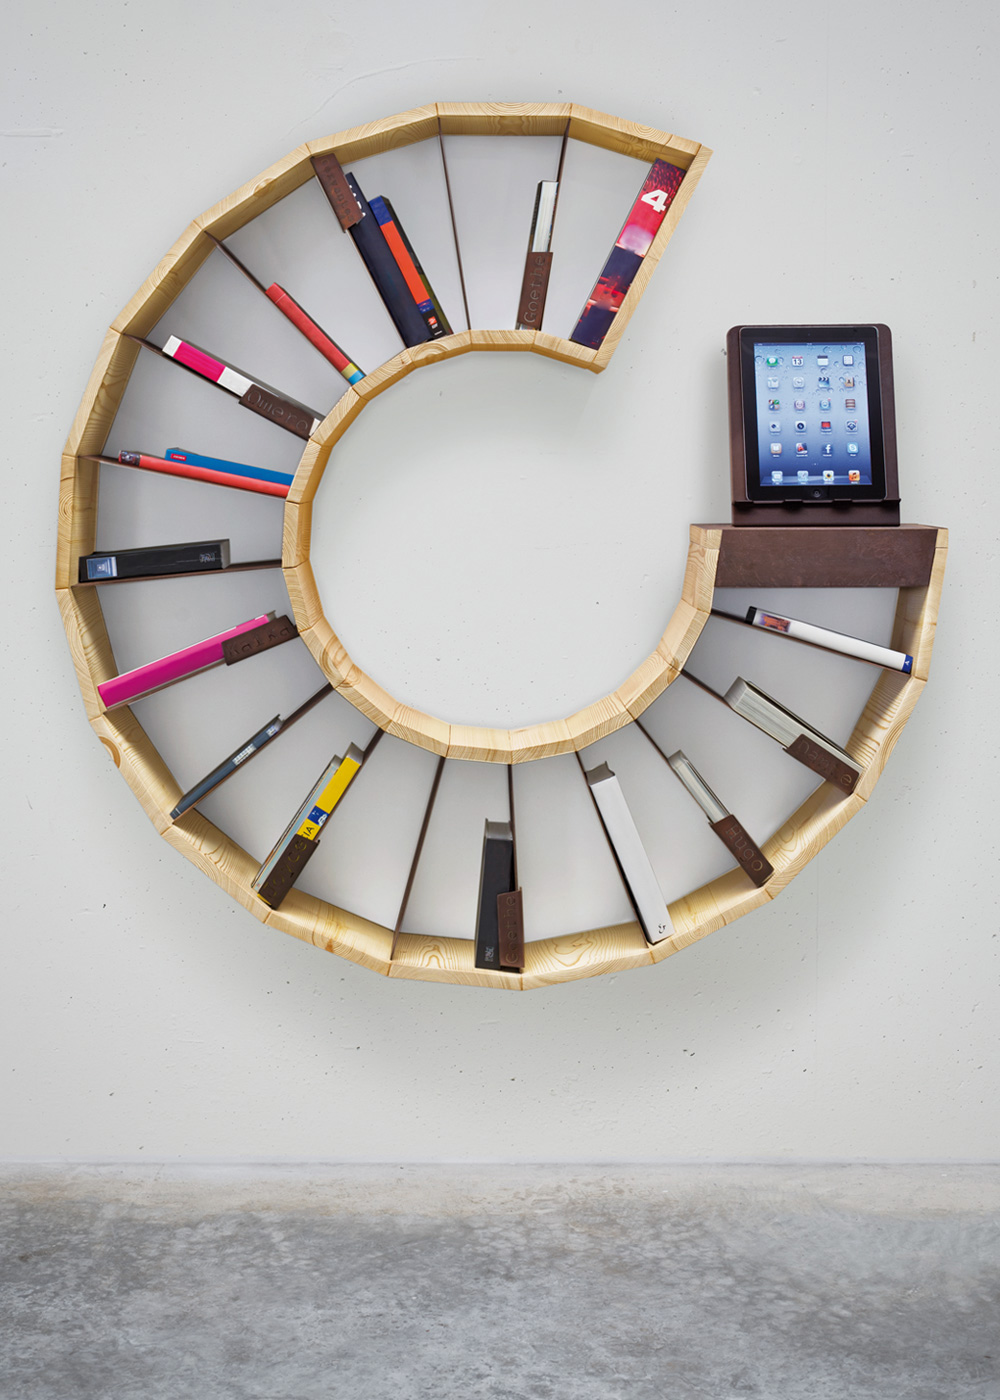 20 creative bookshelves modern and modular - Wall Hanging Book Shelf